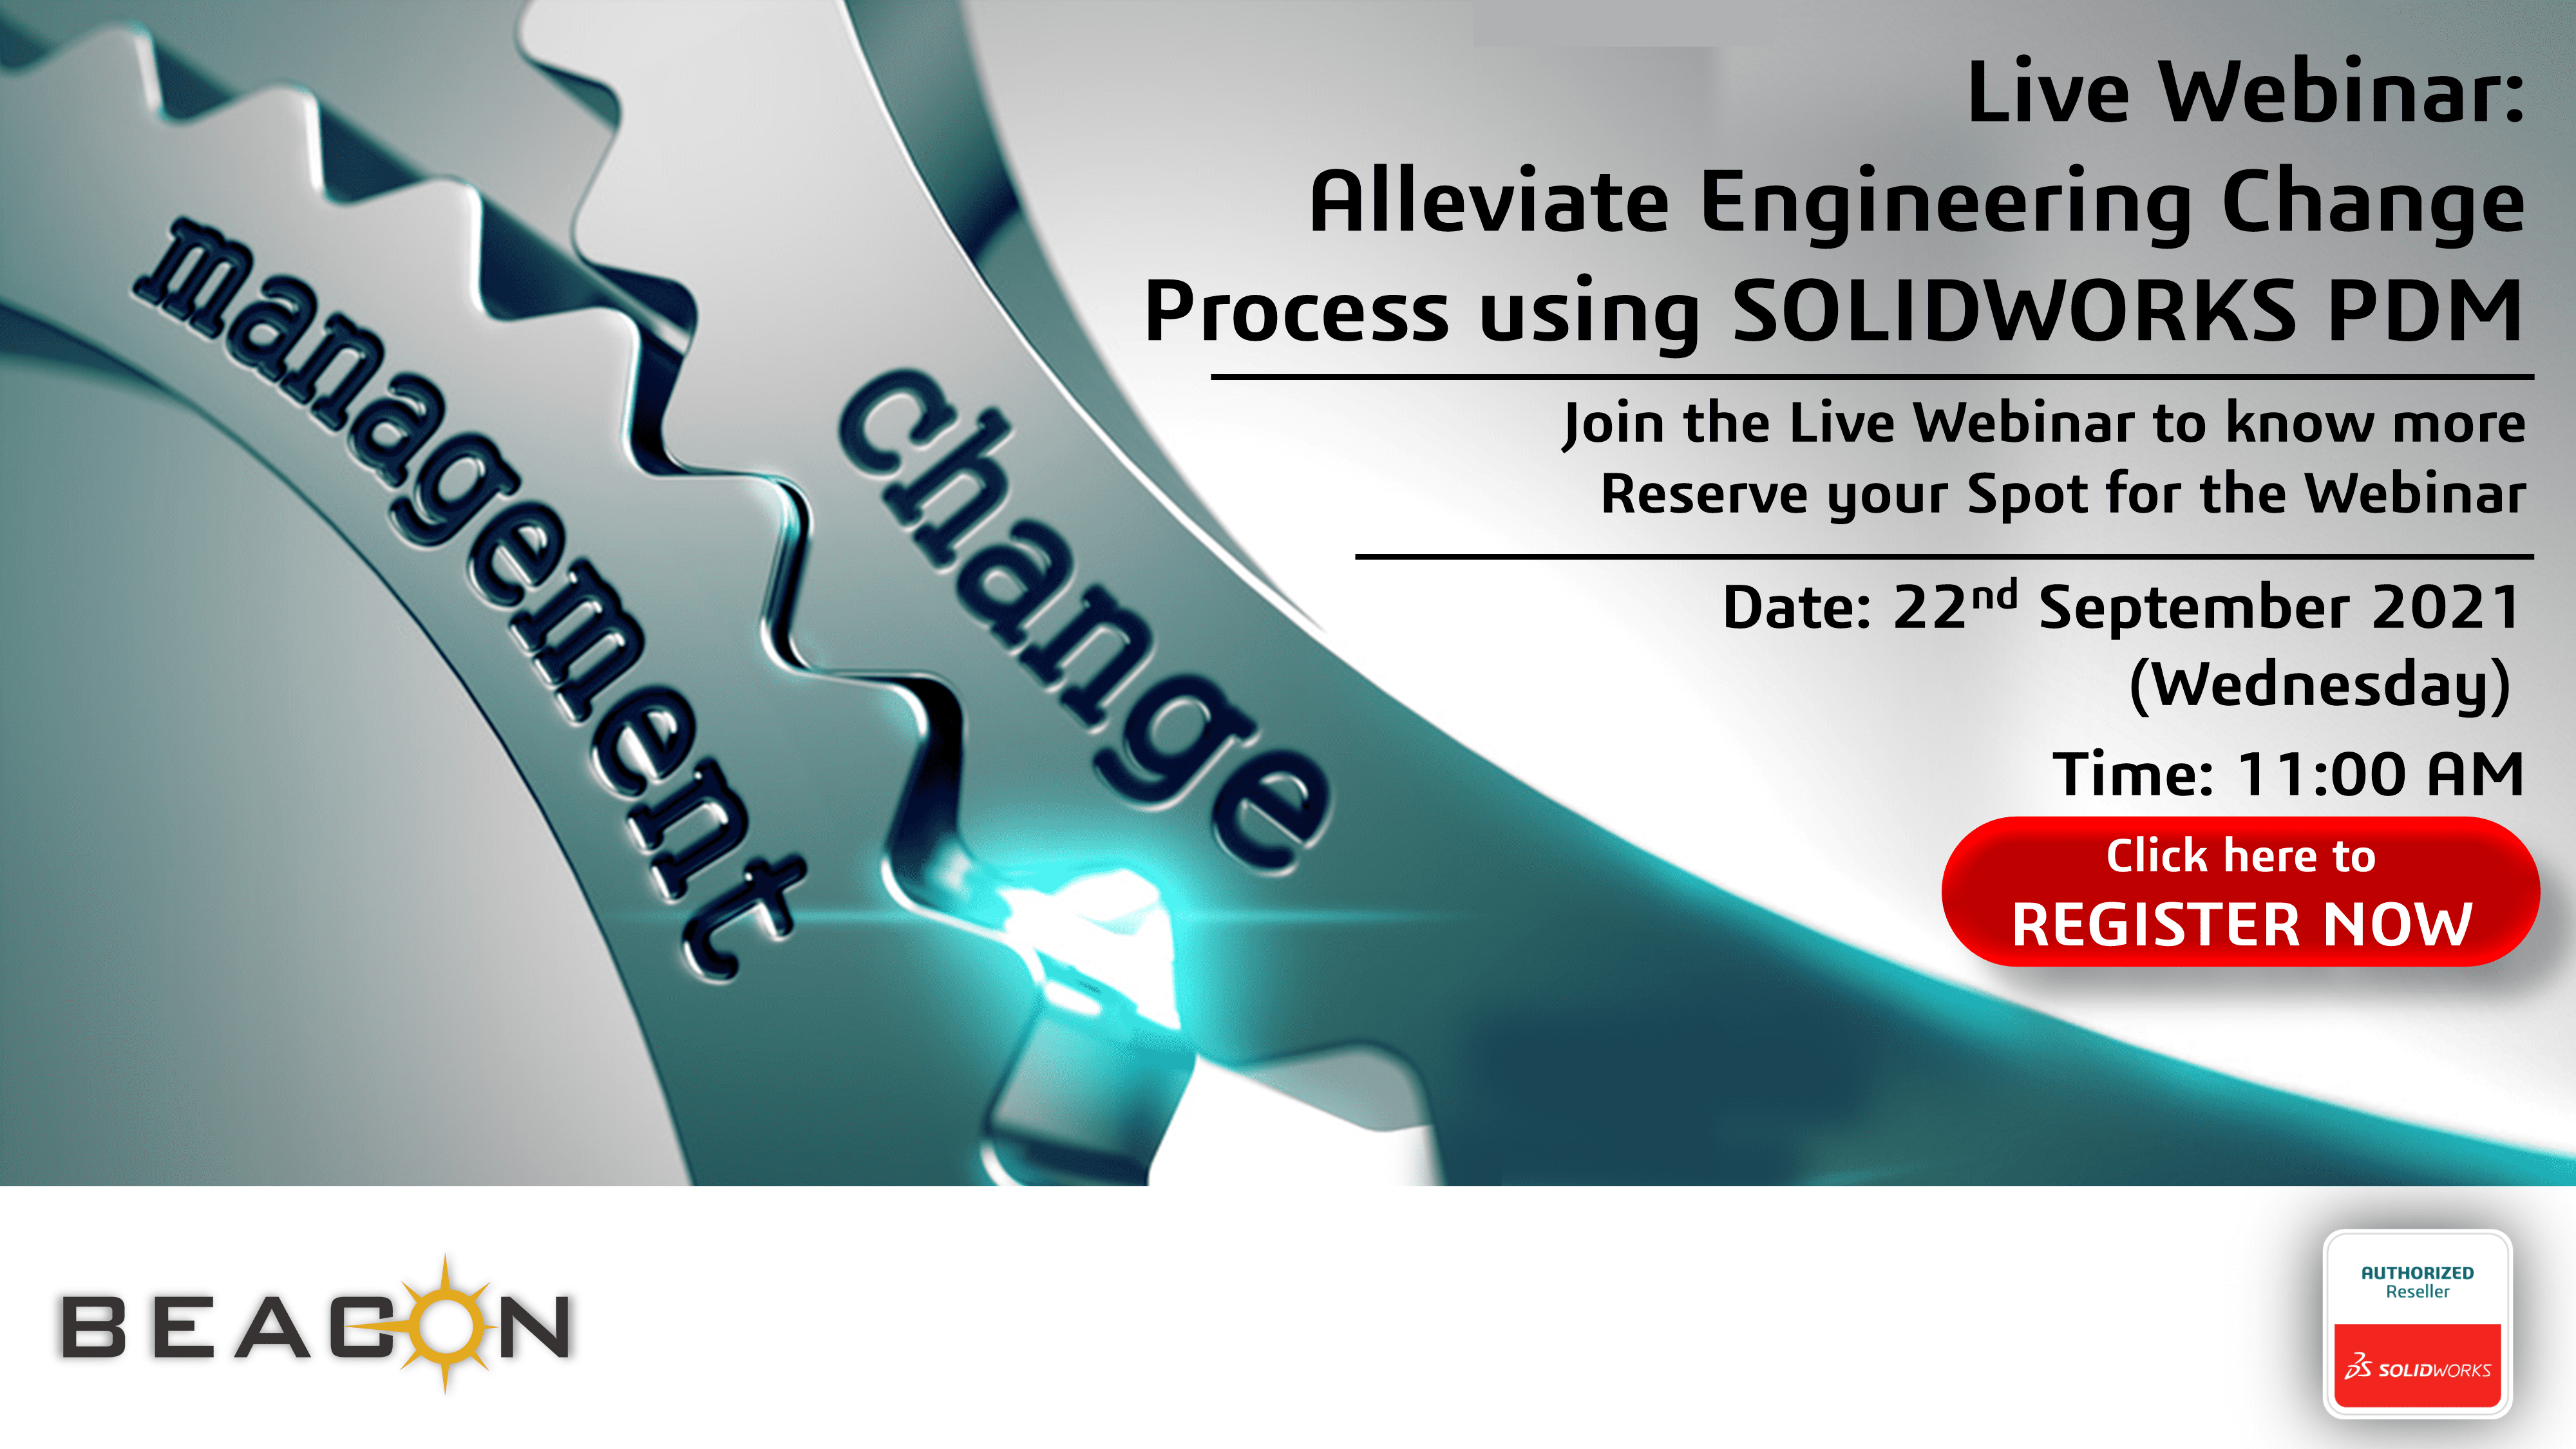 Alleviate Engineering Change Process using SOLIDWORKS PDM